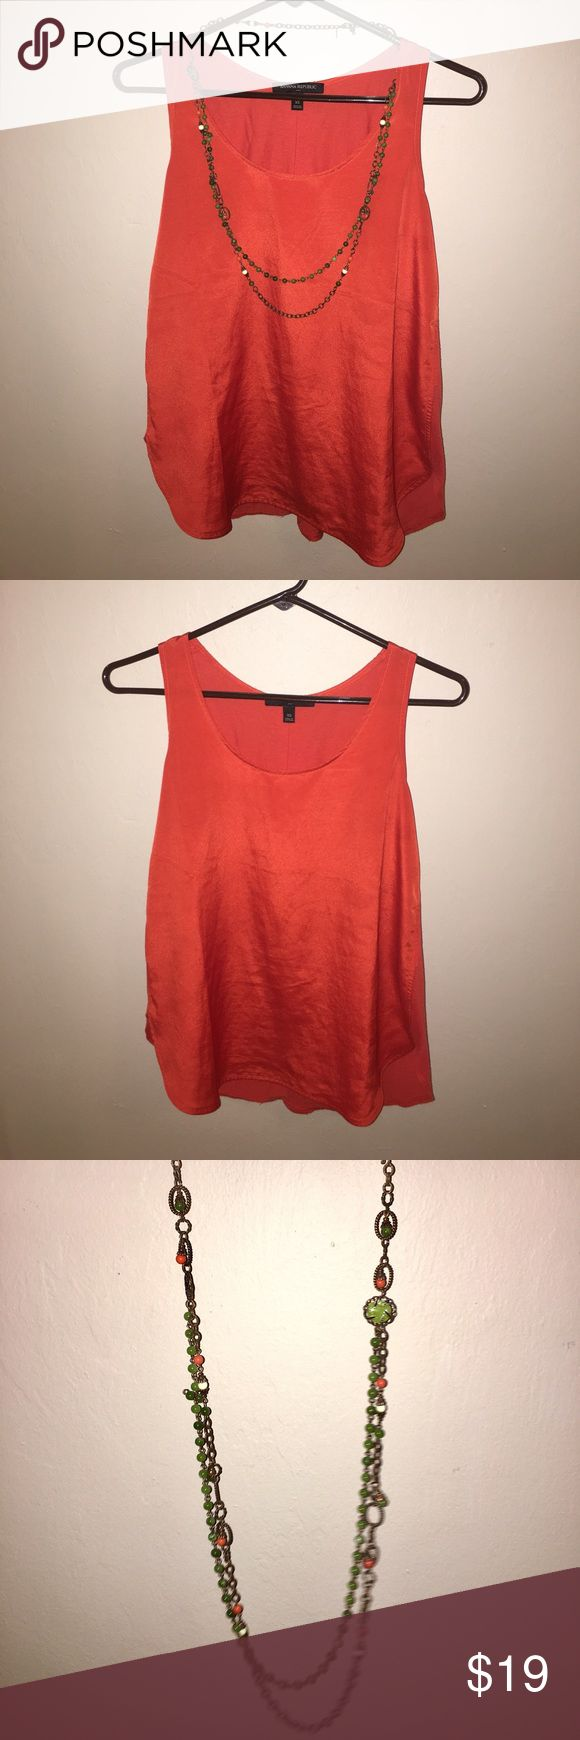 Banana Republic XS Orange Tank + Boho Necklace. Preowned Banana Republic XS Orange Tank + Boho Necklace. Tank and Necklace are separate pieces but I have paired them together since they go so well together. Tank is an XS but it does runs a bit on the big side. It is a loose fitting top that pairs well with leggings or tight jeans. Some very slight wear on the tank but it is in great, preowned condition. Necklace is also in great, preowned condition and is adjustable. Banana Republic Tops…